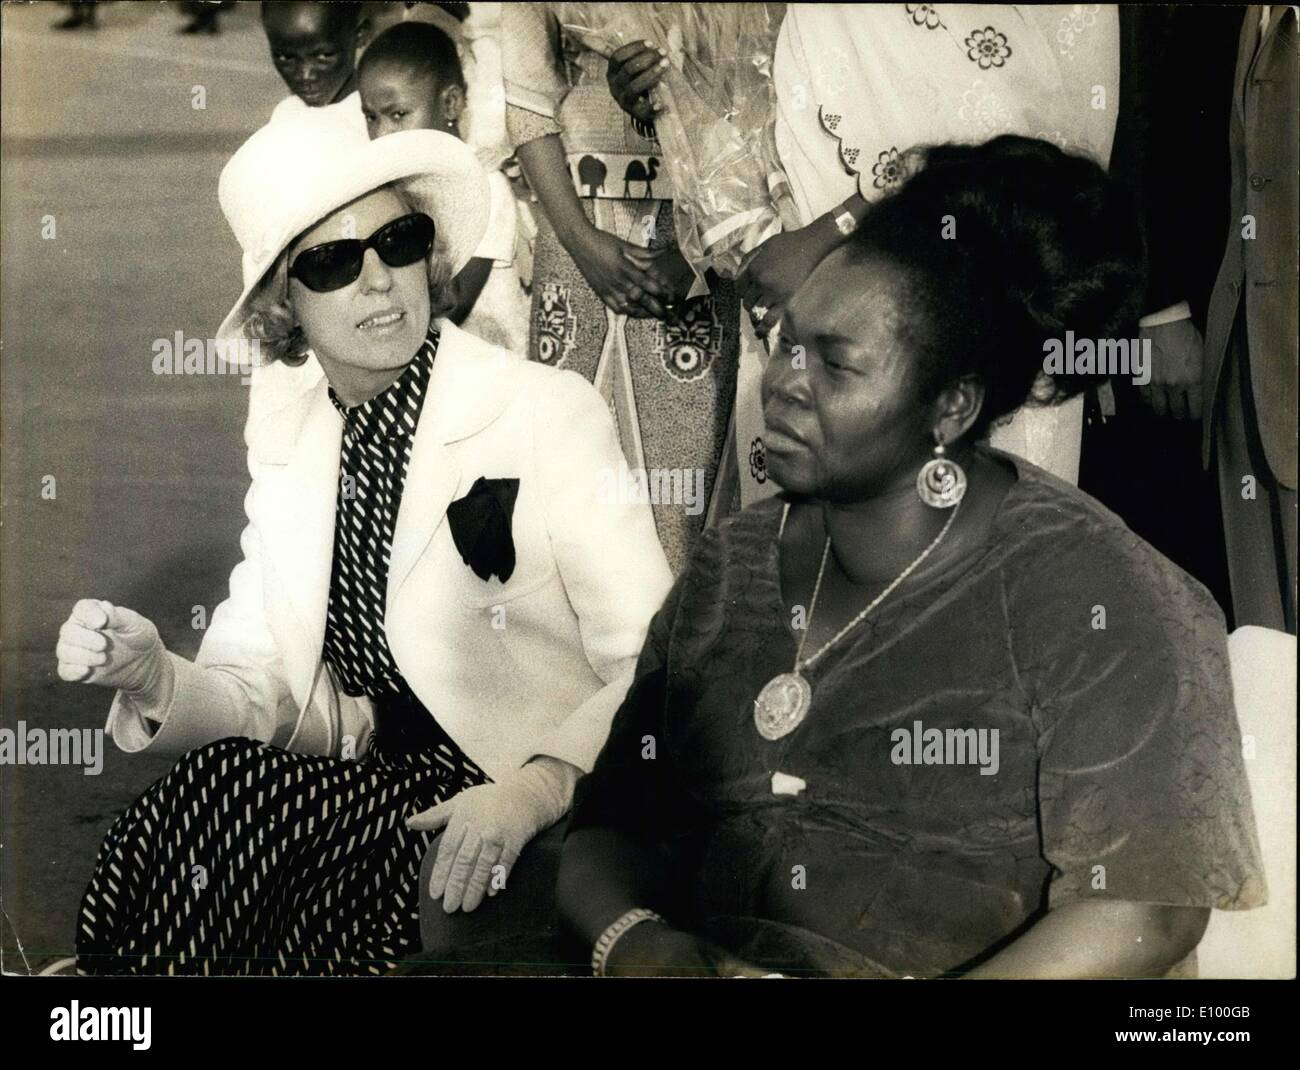 Jan. 28, 1972 - Coming from Nigeria, Mrs. Pompidou arrived in Tchad where she met the first lady of Tchad. - Stock Image